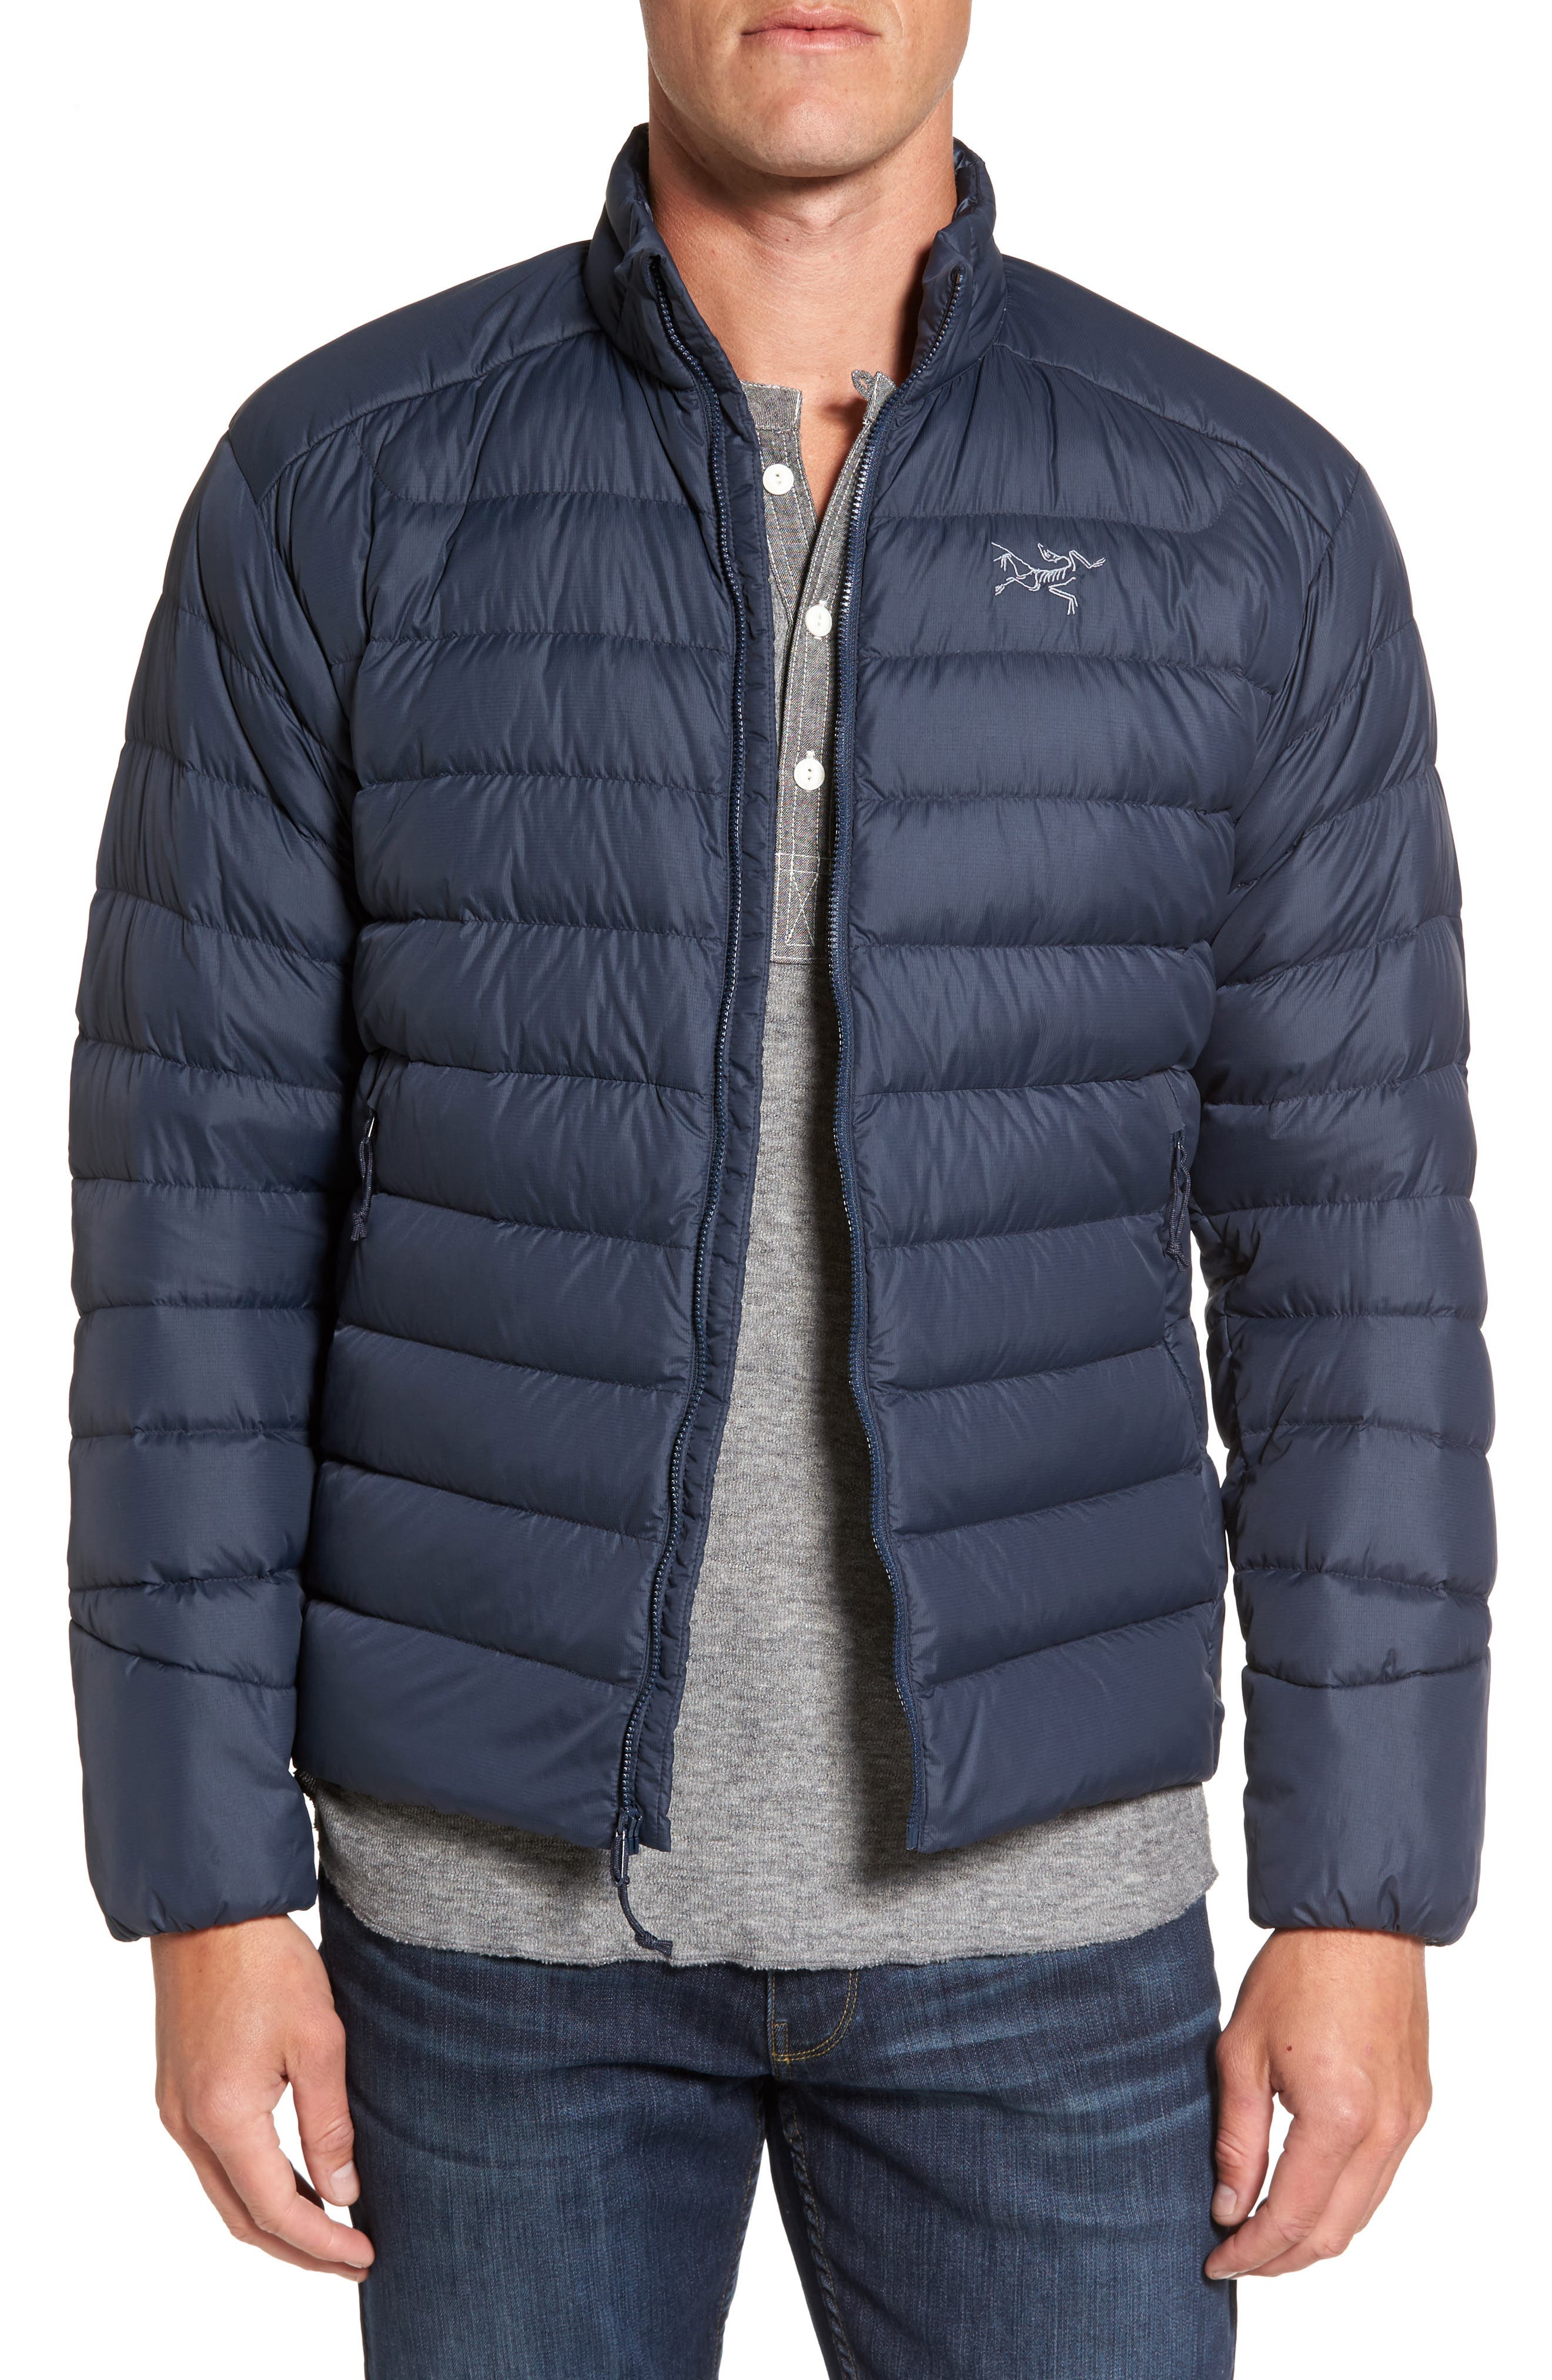 Thorium AR Water Resistant 750 Fill Power Down Jacket,                             Main thumbnail 1, color,                             400